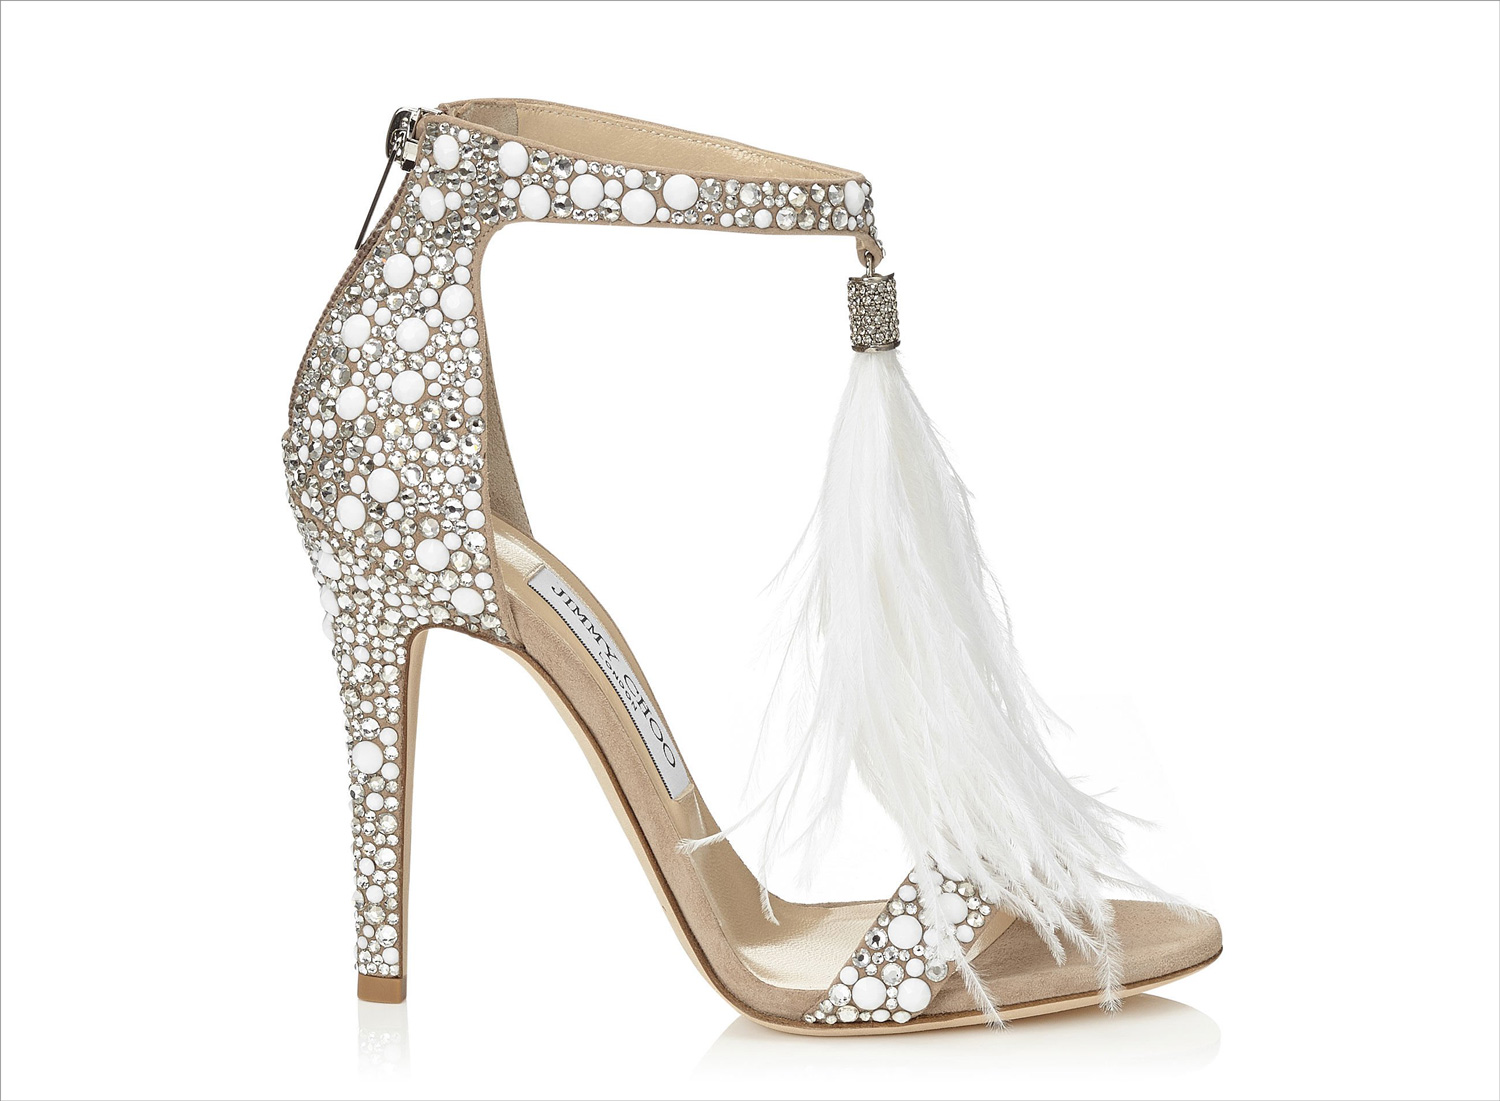 Voila 110 crystal wedding heels with ostrich feather tassel jimmy choo popular wedding shoes